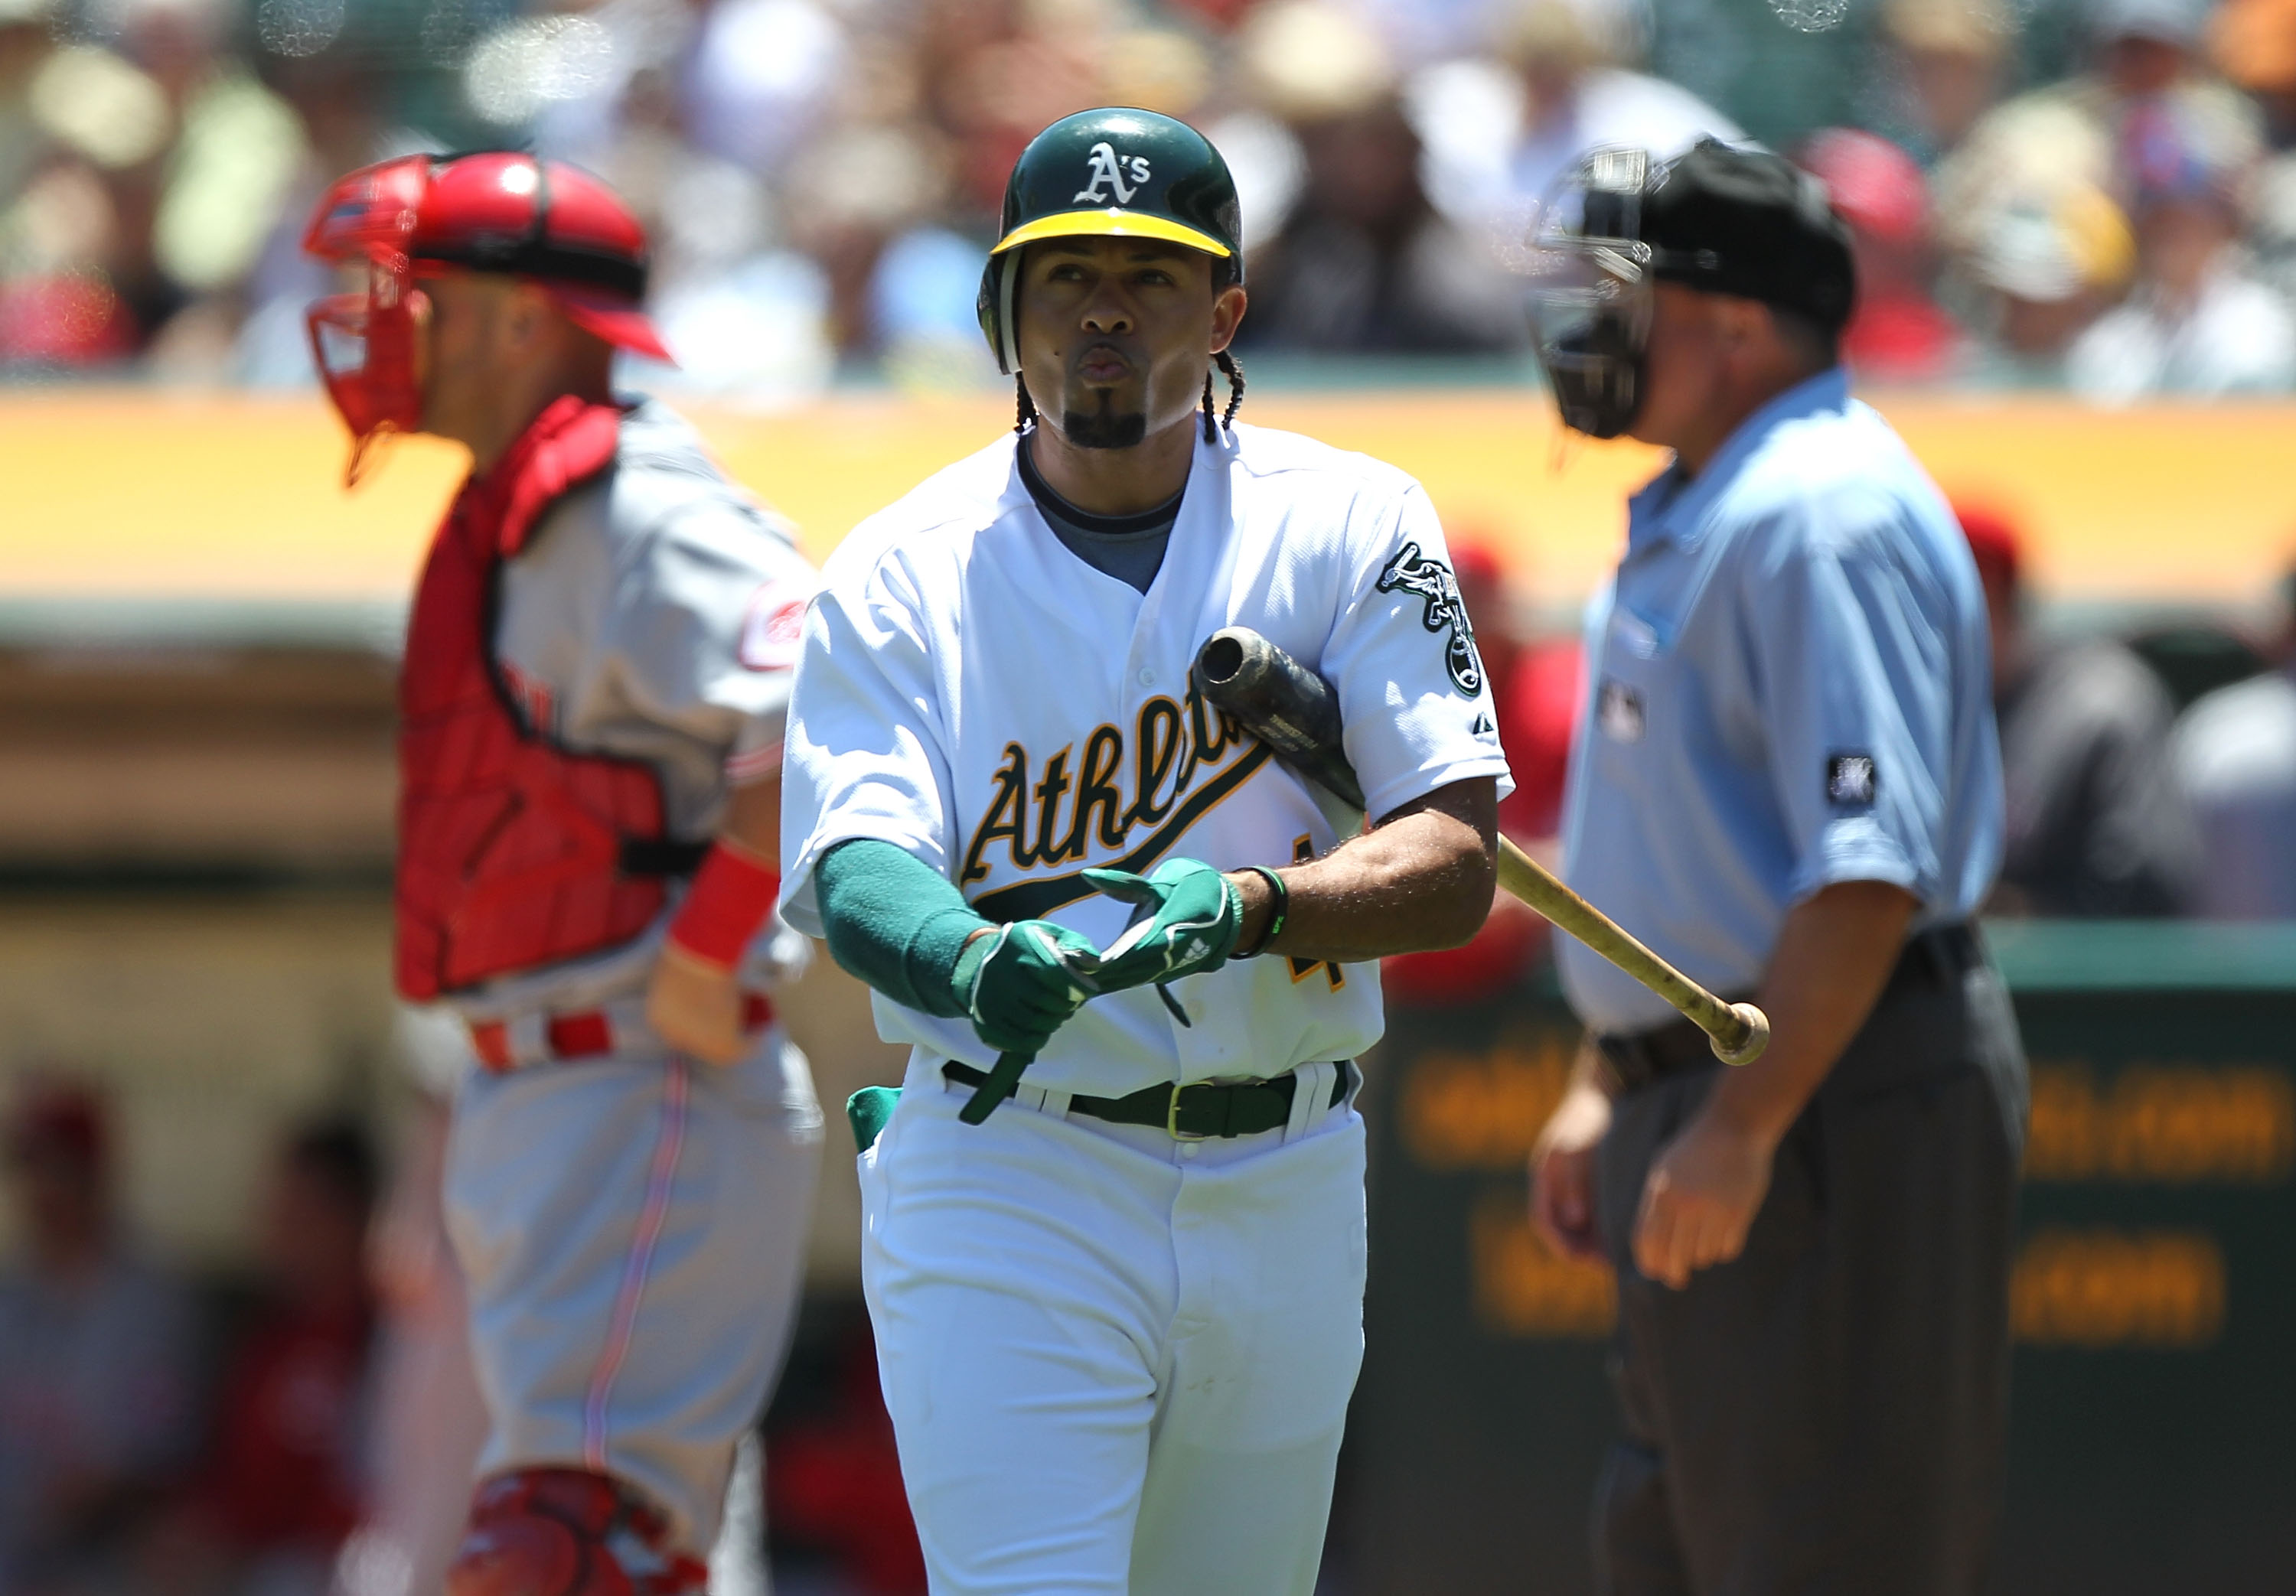 OAKLAND, CA - JUNE 23:  Coco Crisp #4 of the Oakland Athletics strikes out against the Cincinnati Reds in the first inning during an MLB game at the Oakland-Alameda County Coliseum on June 23, 2010 in Oakland, California.  (Photo by Jed Jacobsohn/Getty Im